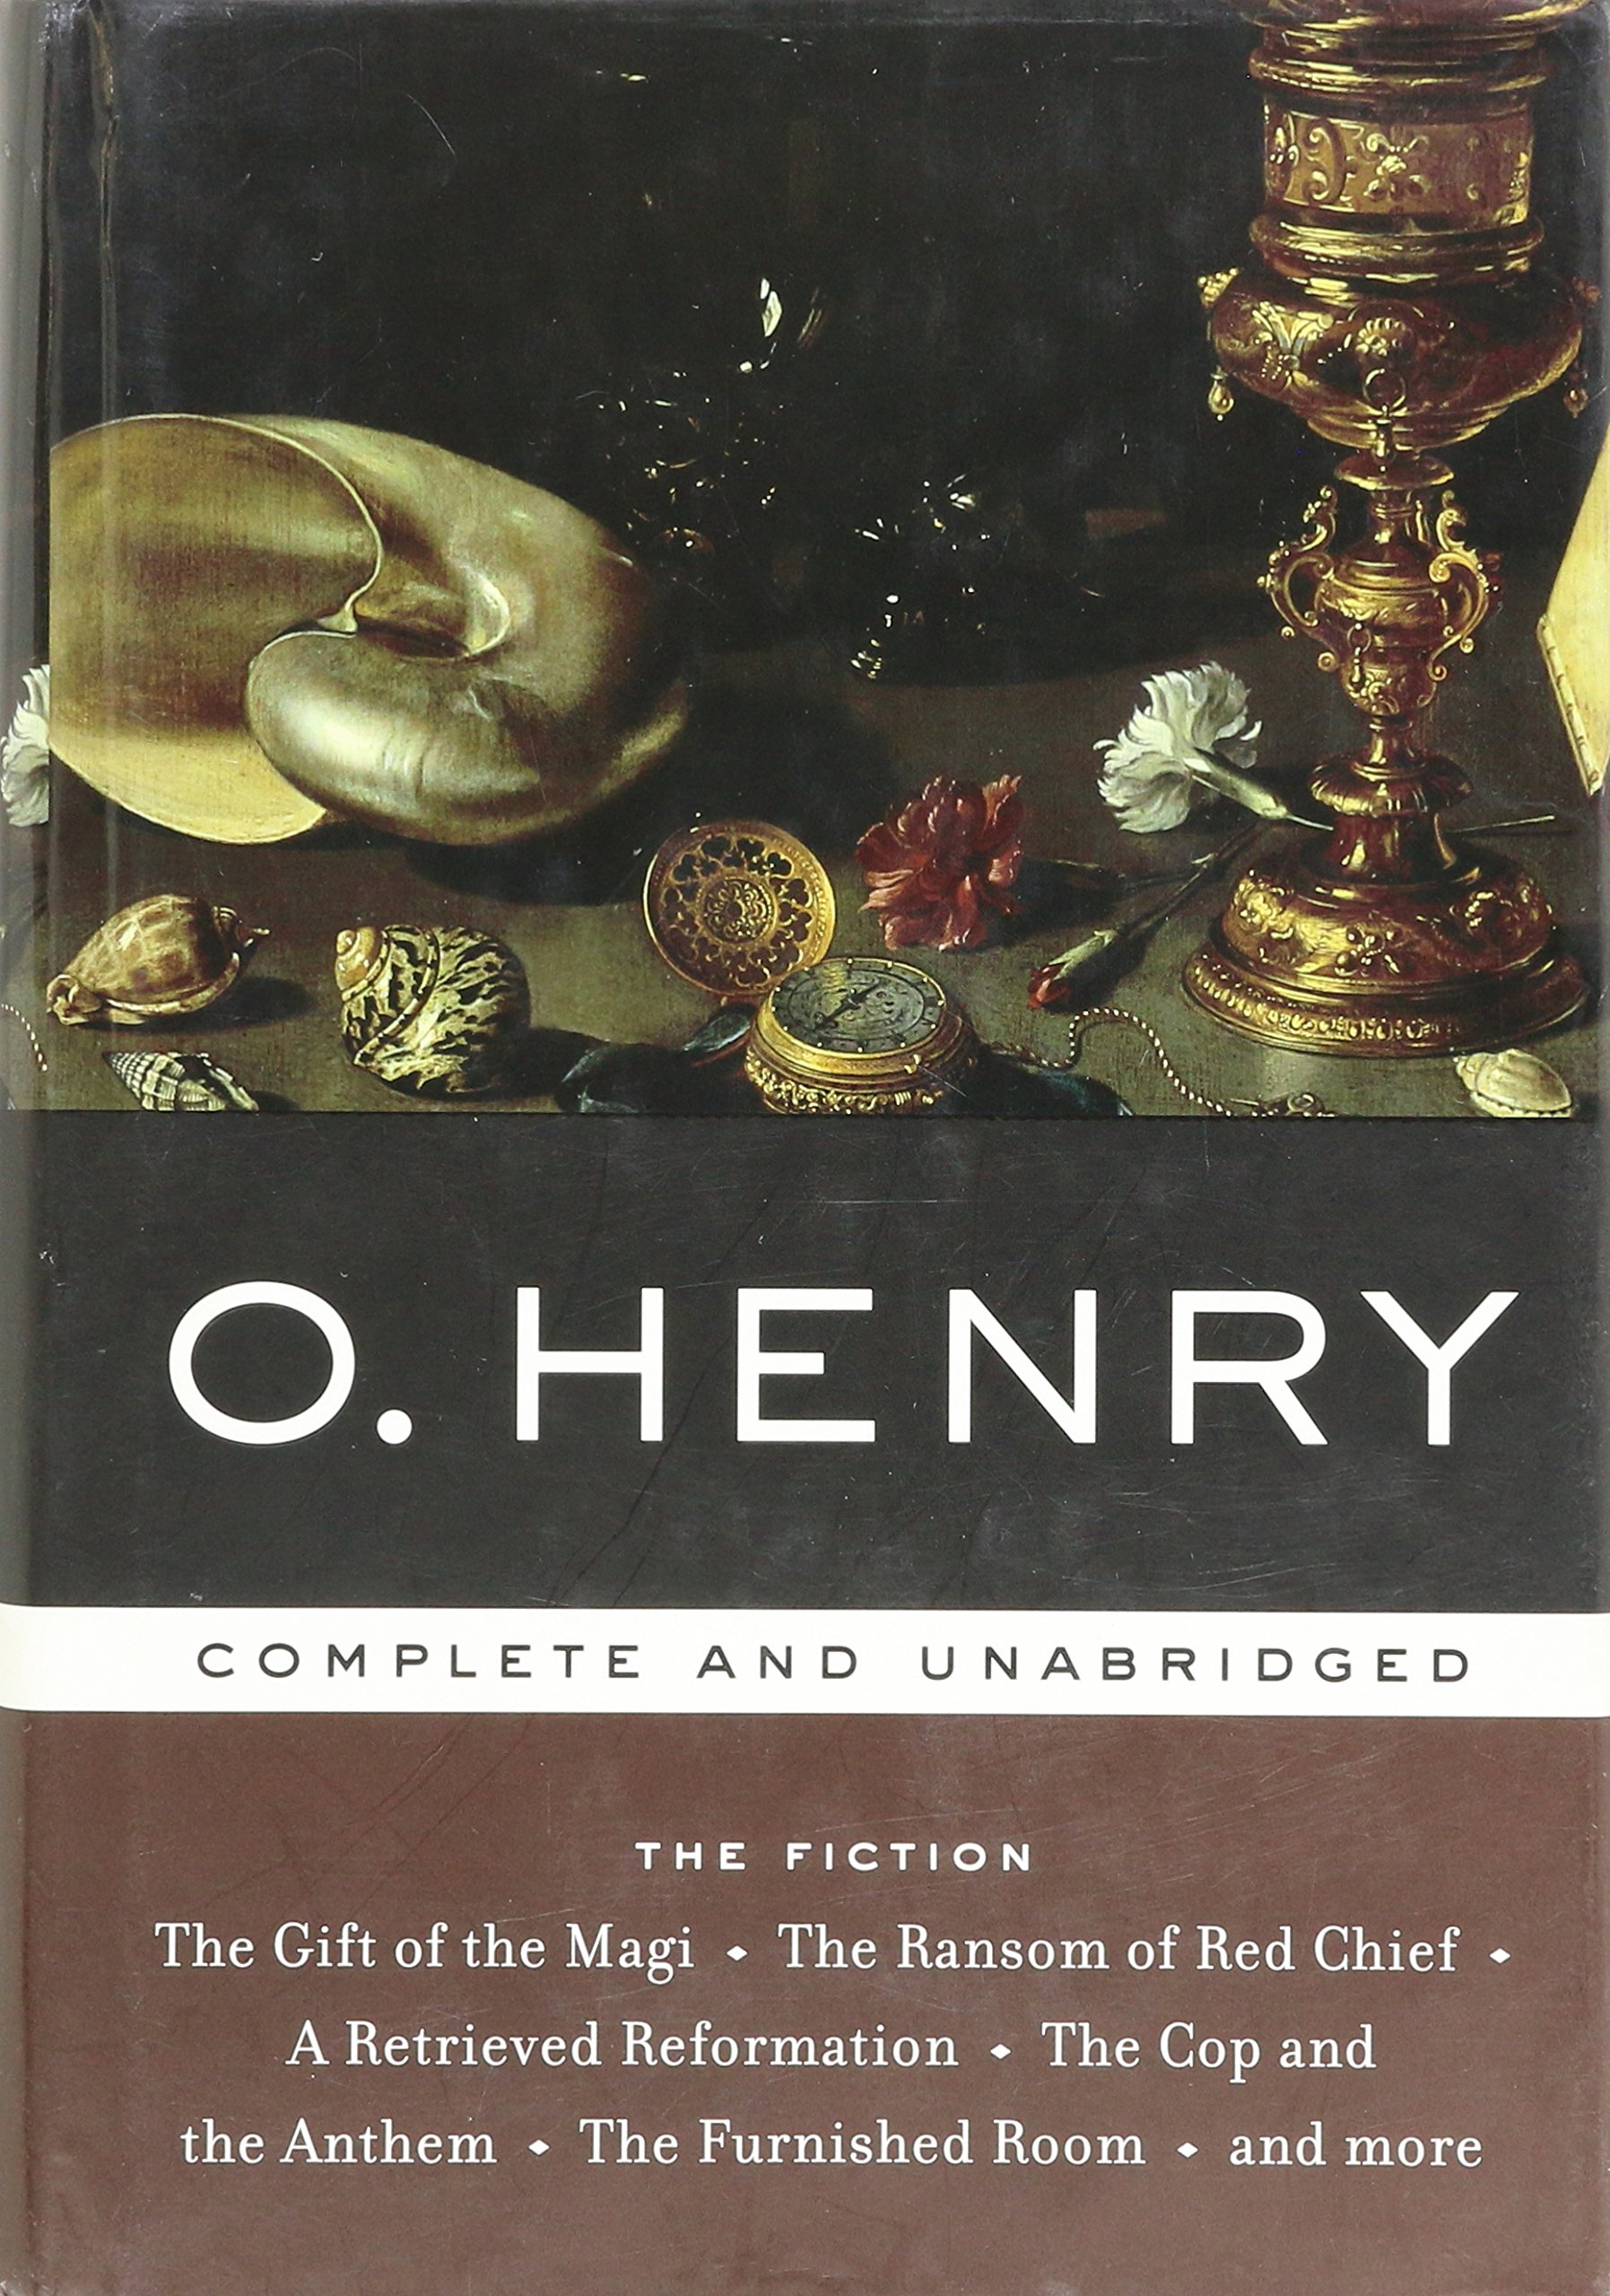 O. Henry: The Fiction (Complete and Unabridged) - The Gift of the Magi, The Ransom of Red Chief, A Retrieved Reformation, The Cop and the Anthem, The Furnished Room, and more pdf epub